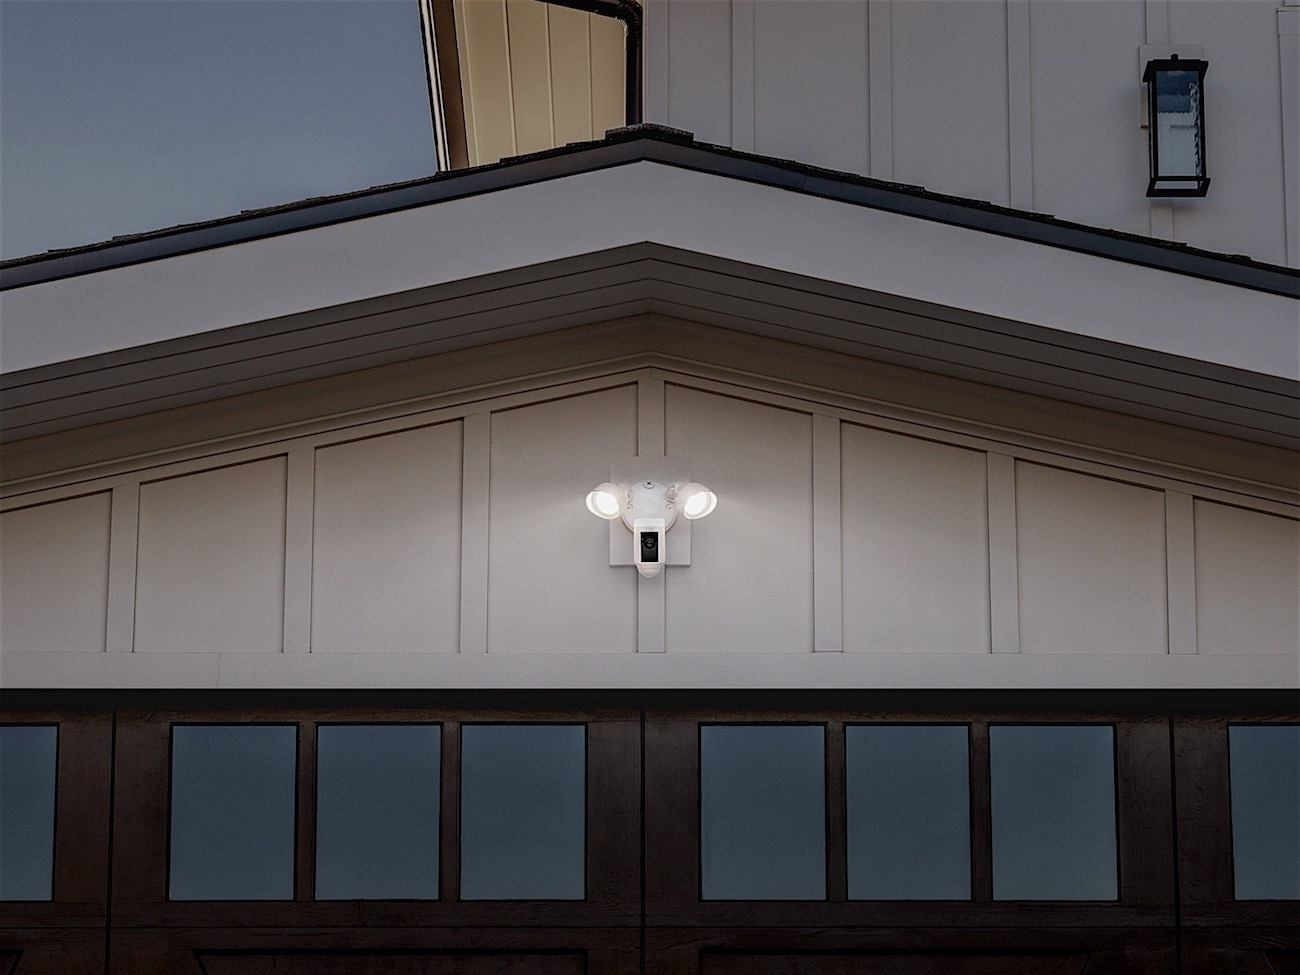 Ring Floodlight Issues